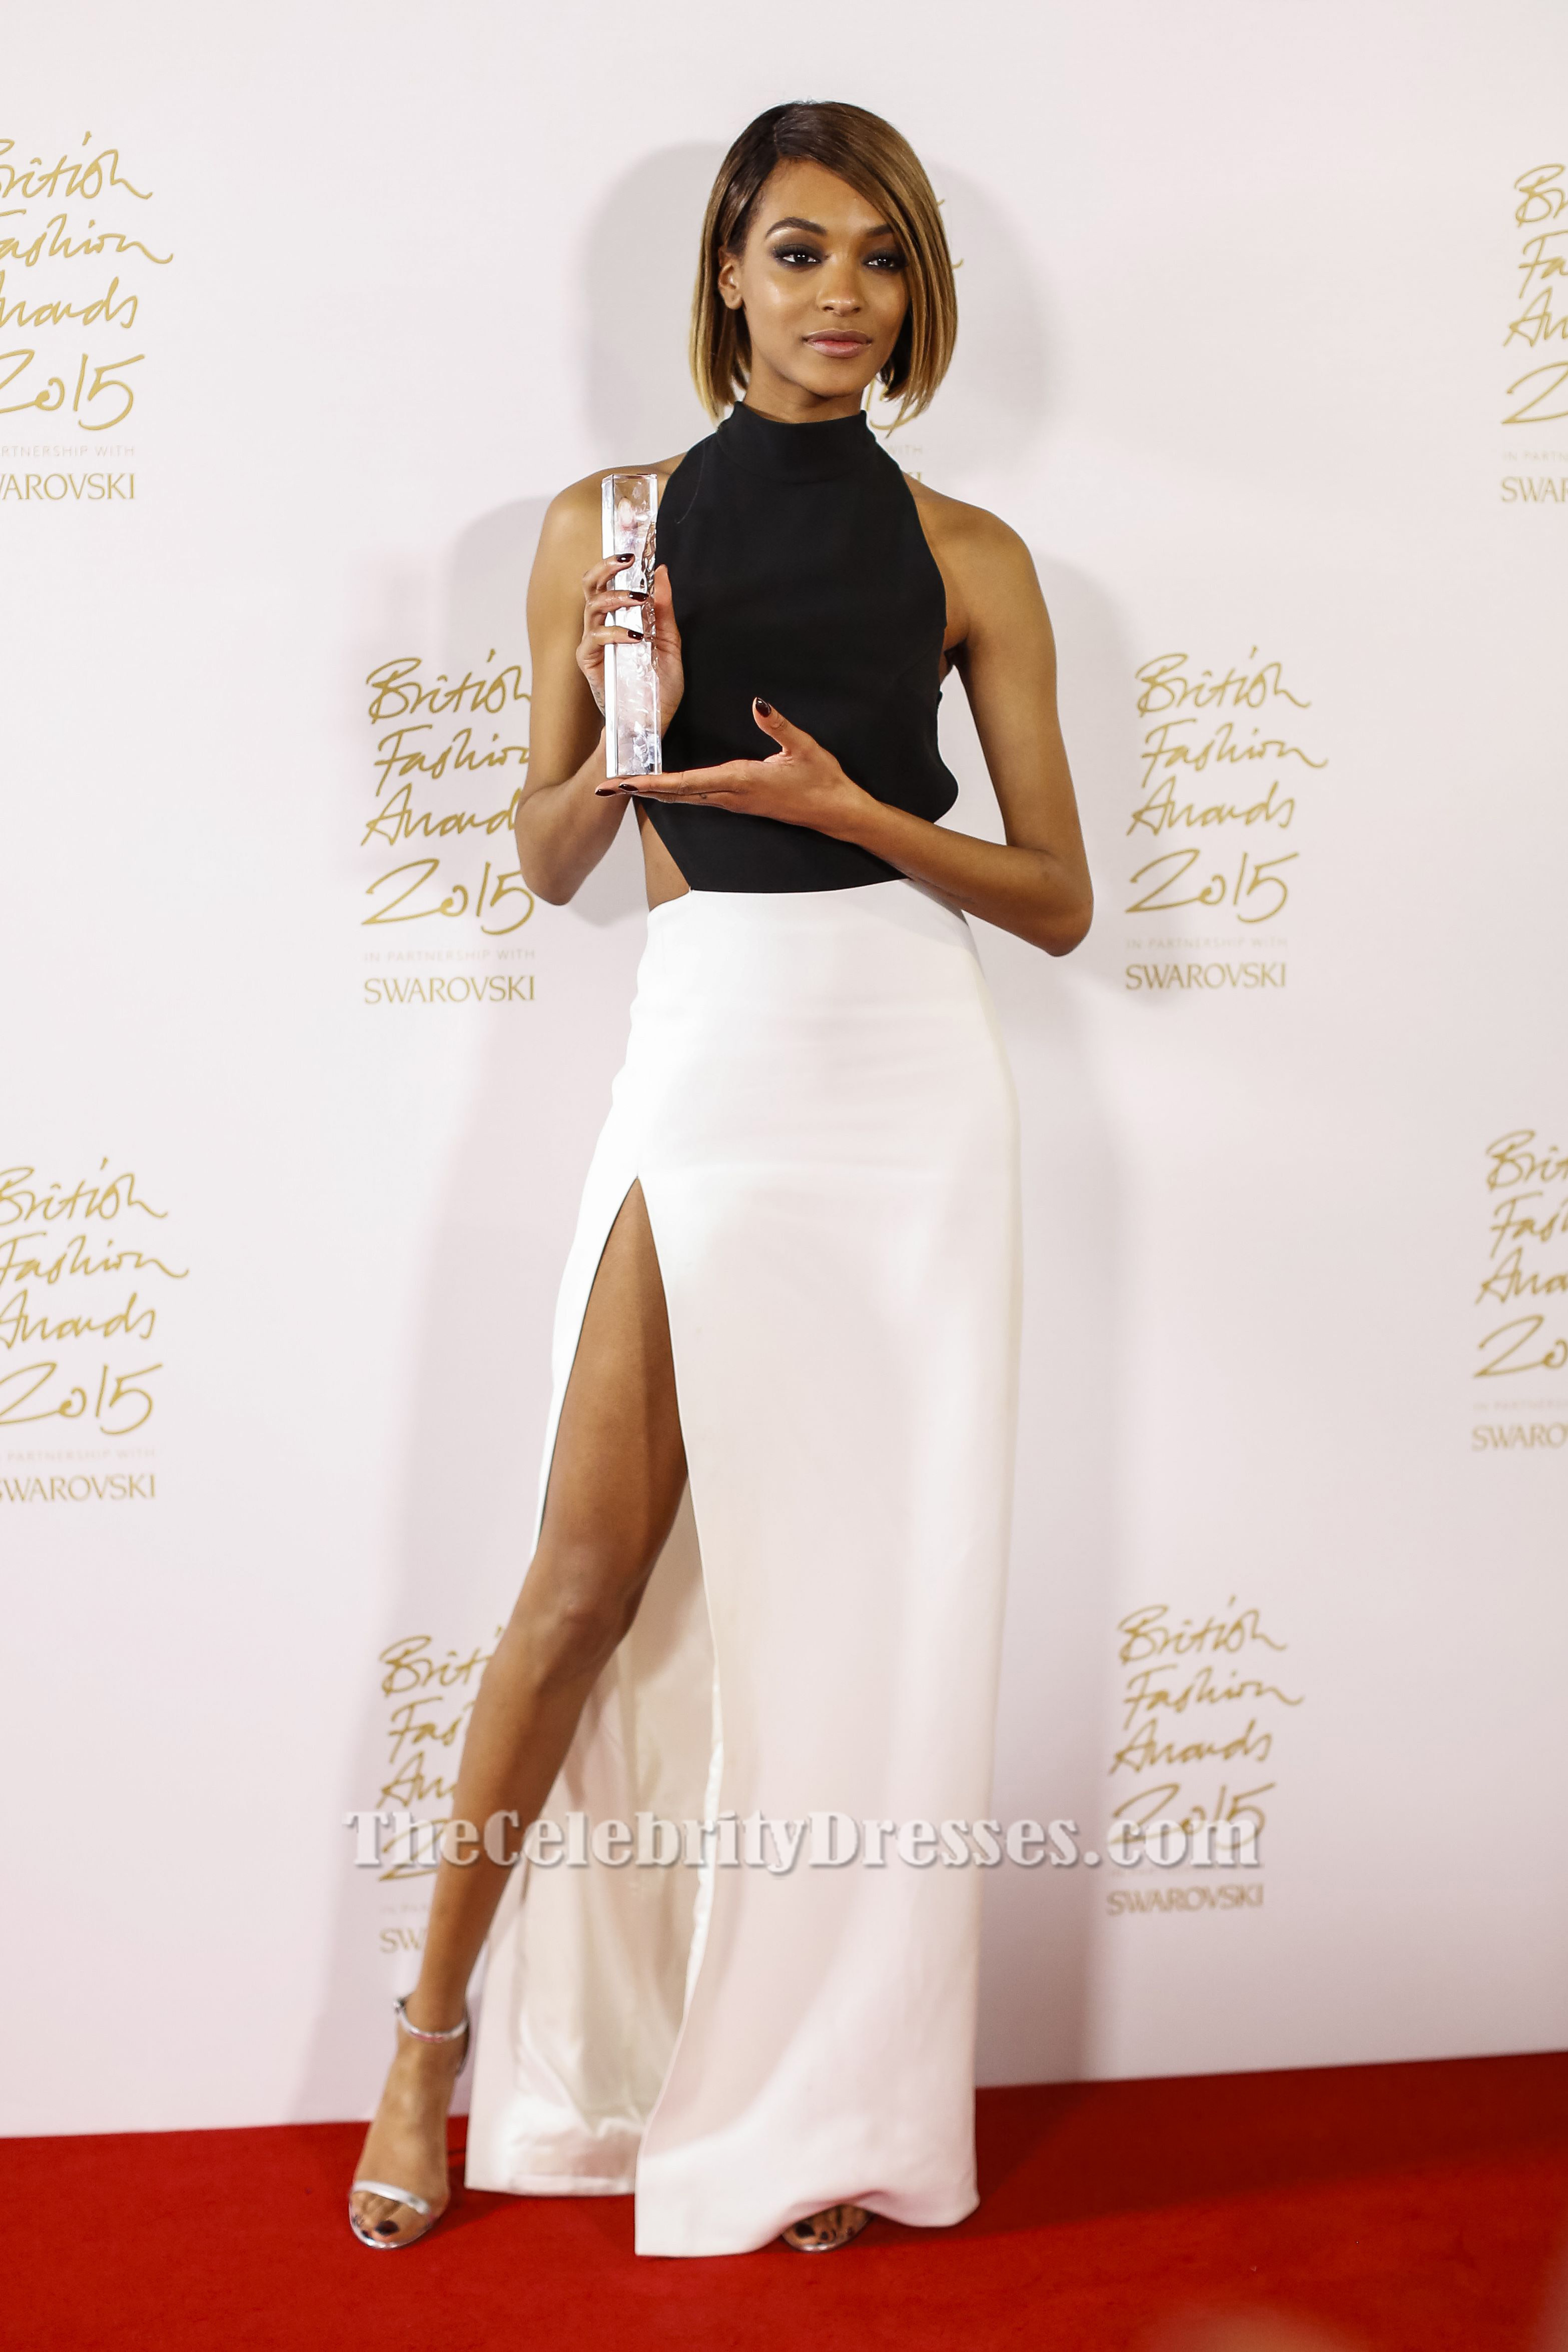 Jourdan Dunn Sexy Black And White Evening Dress 2015 British Fashion Awards Thecelebritydresses